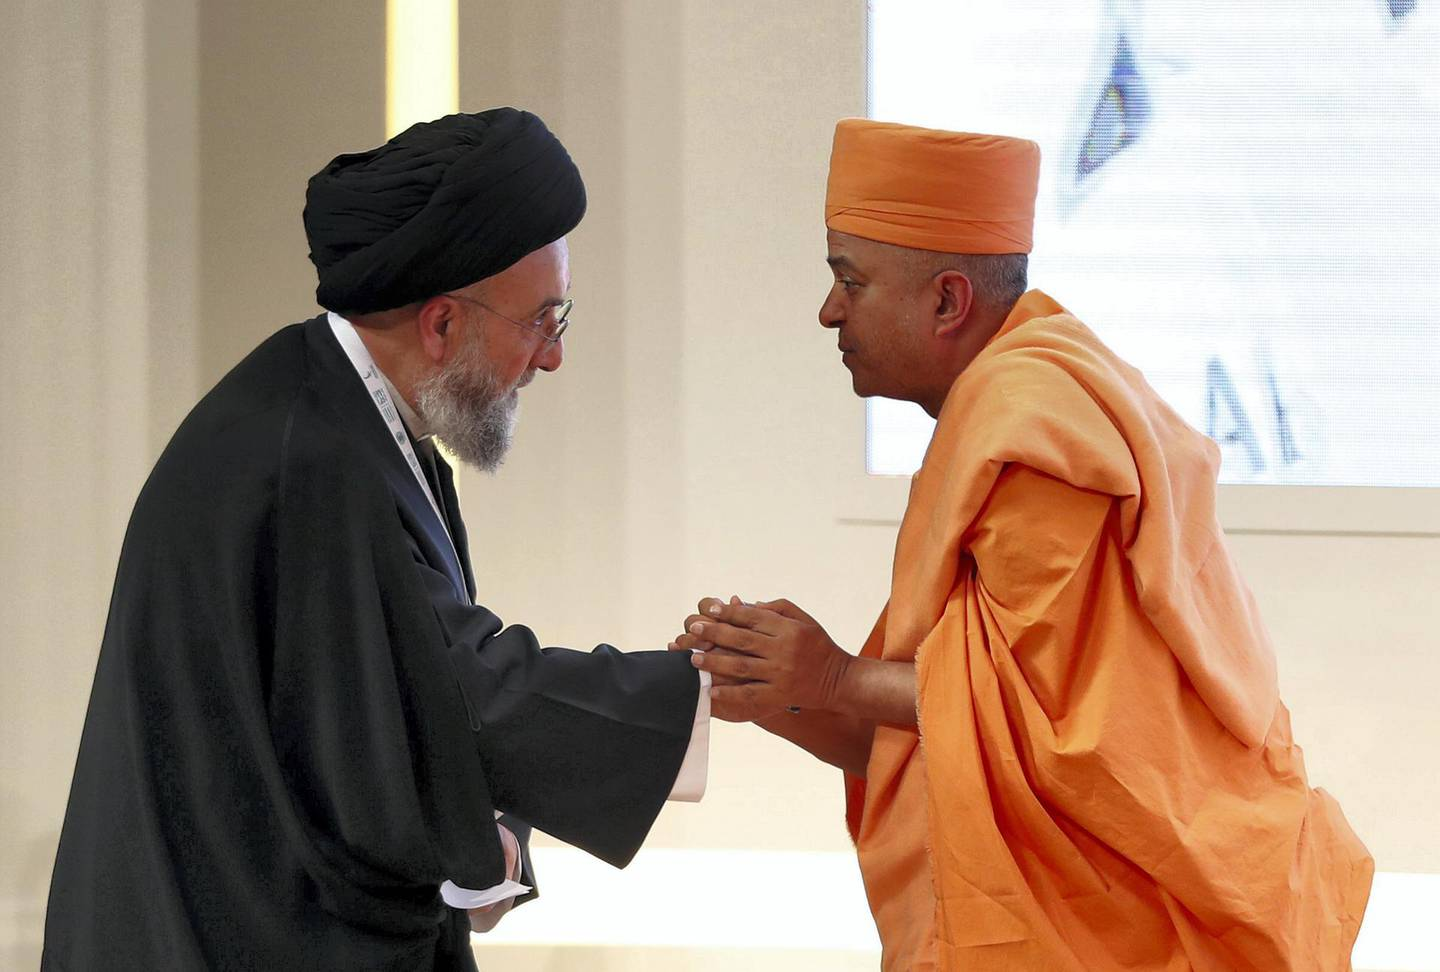 Abu Dhabi, United Arab Emirates - February 03, 2019: H.E. Swami Brahmavihari and H.E. Ali Al-Amin shake hands in the second session at the Global Conference of Human Fraternity. Sunday the 3rd of February 2019 at Emirates Palace, Abu Dhabi. Chris Whiteoak / The National